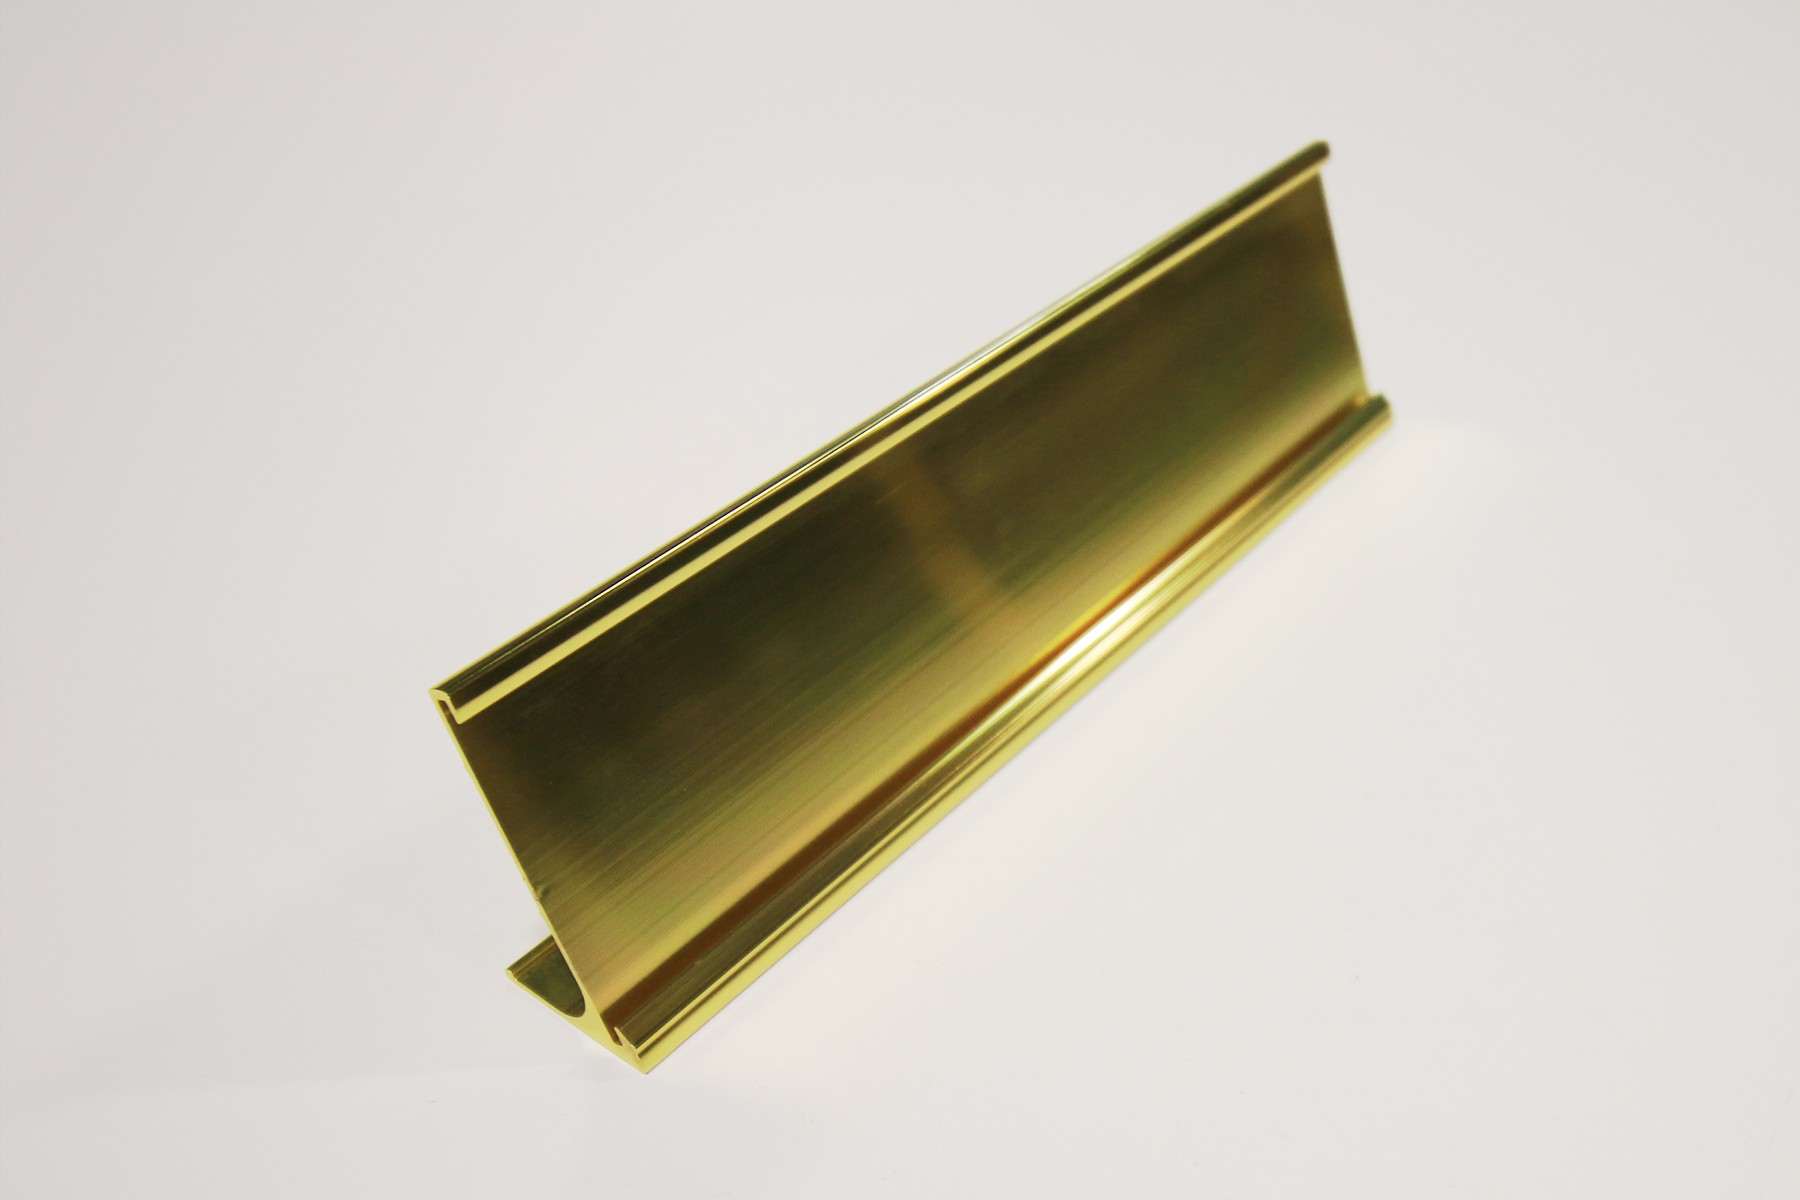 "2"" x 1/16"" x 8"" Desk Holder, Bright Yellow Gold"